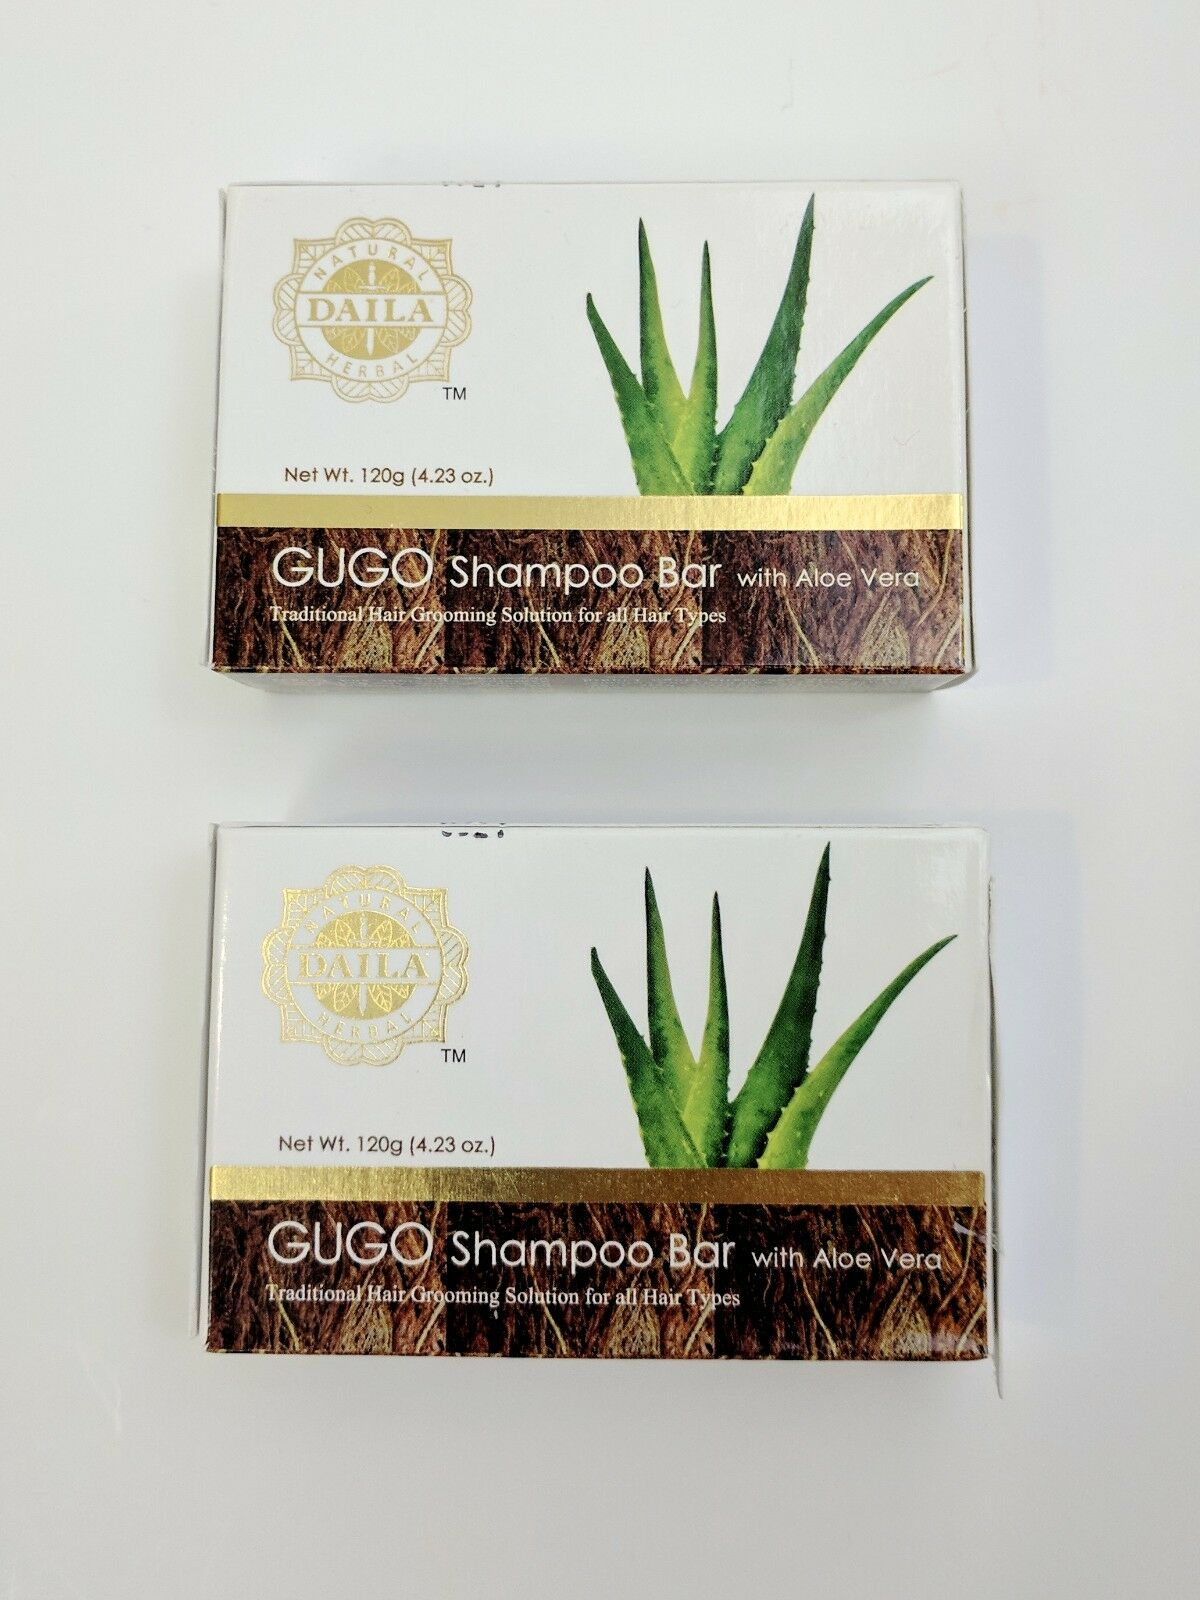 2 Pcs. Daila Natural Herbal GUGO Shampoo Bar with Aloe Vera